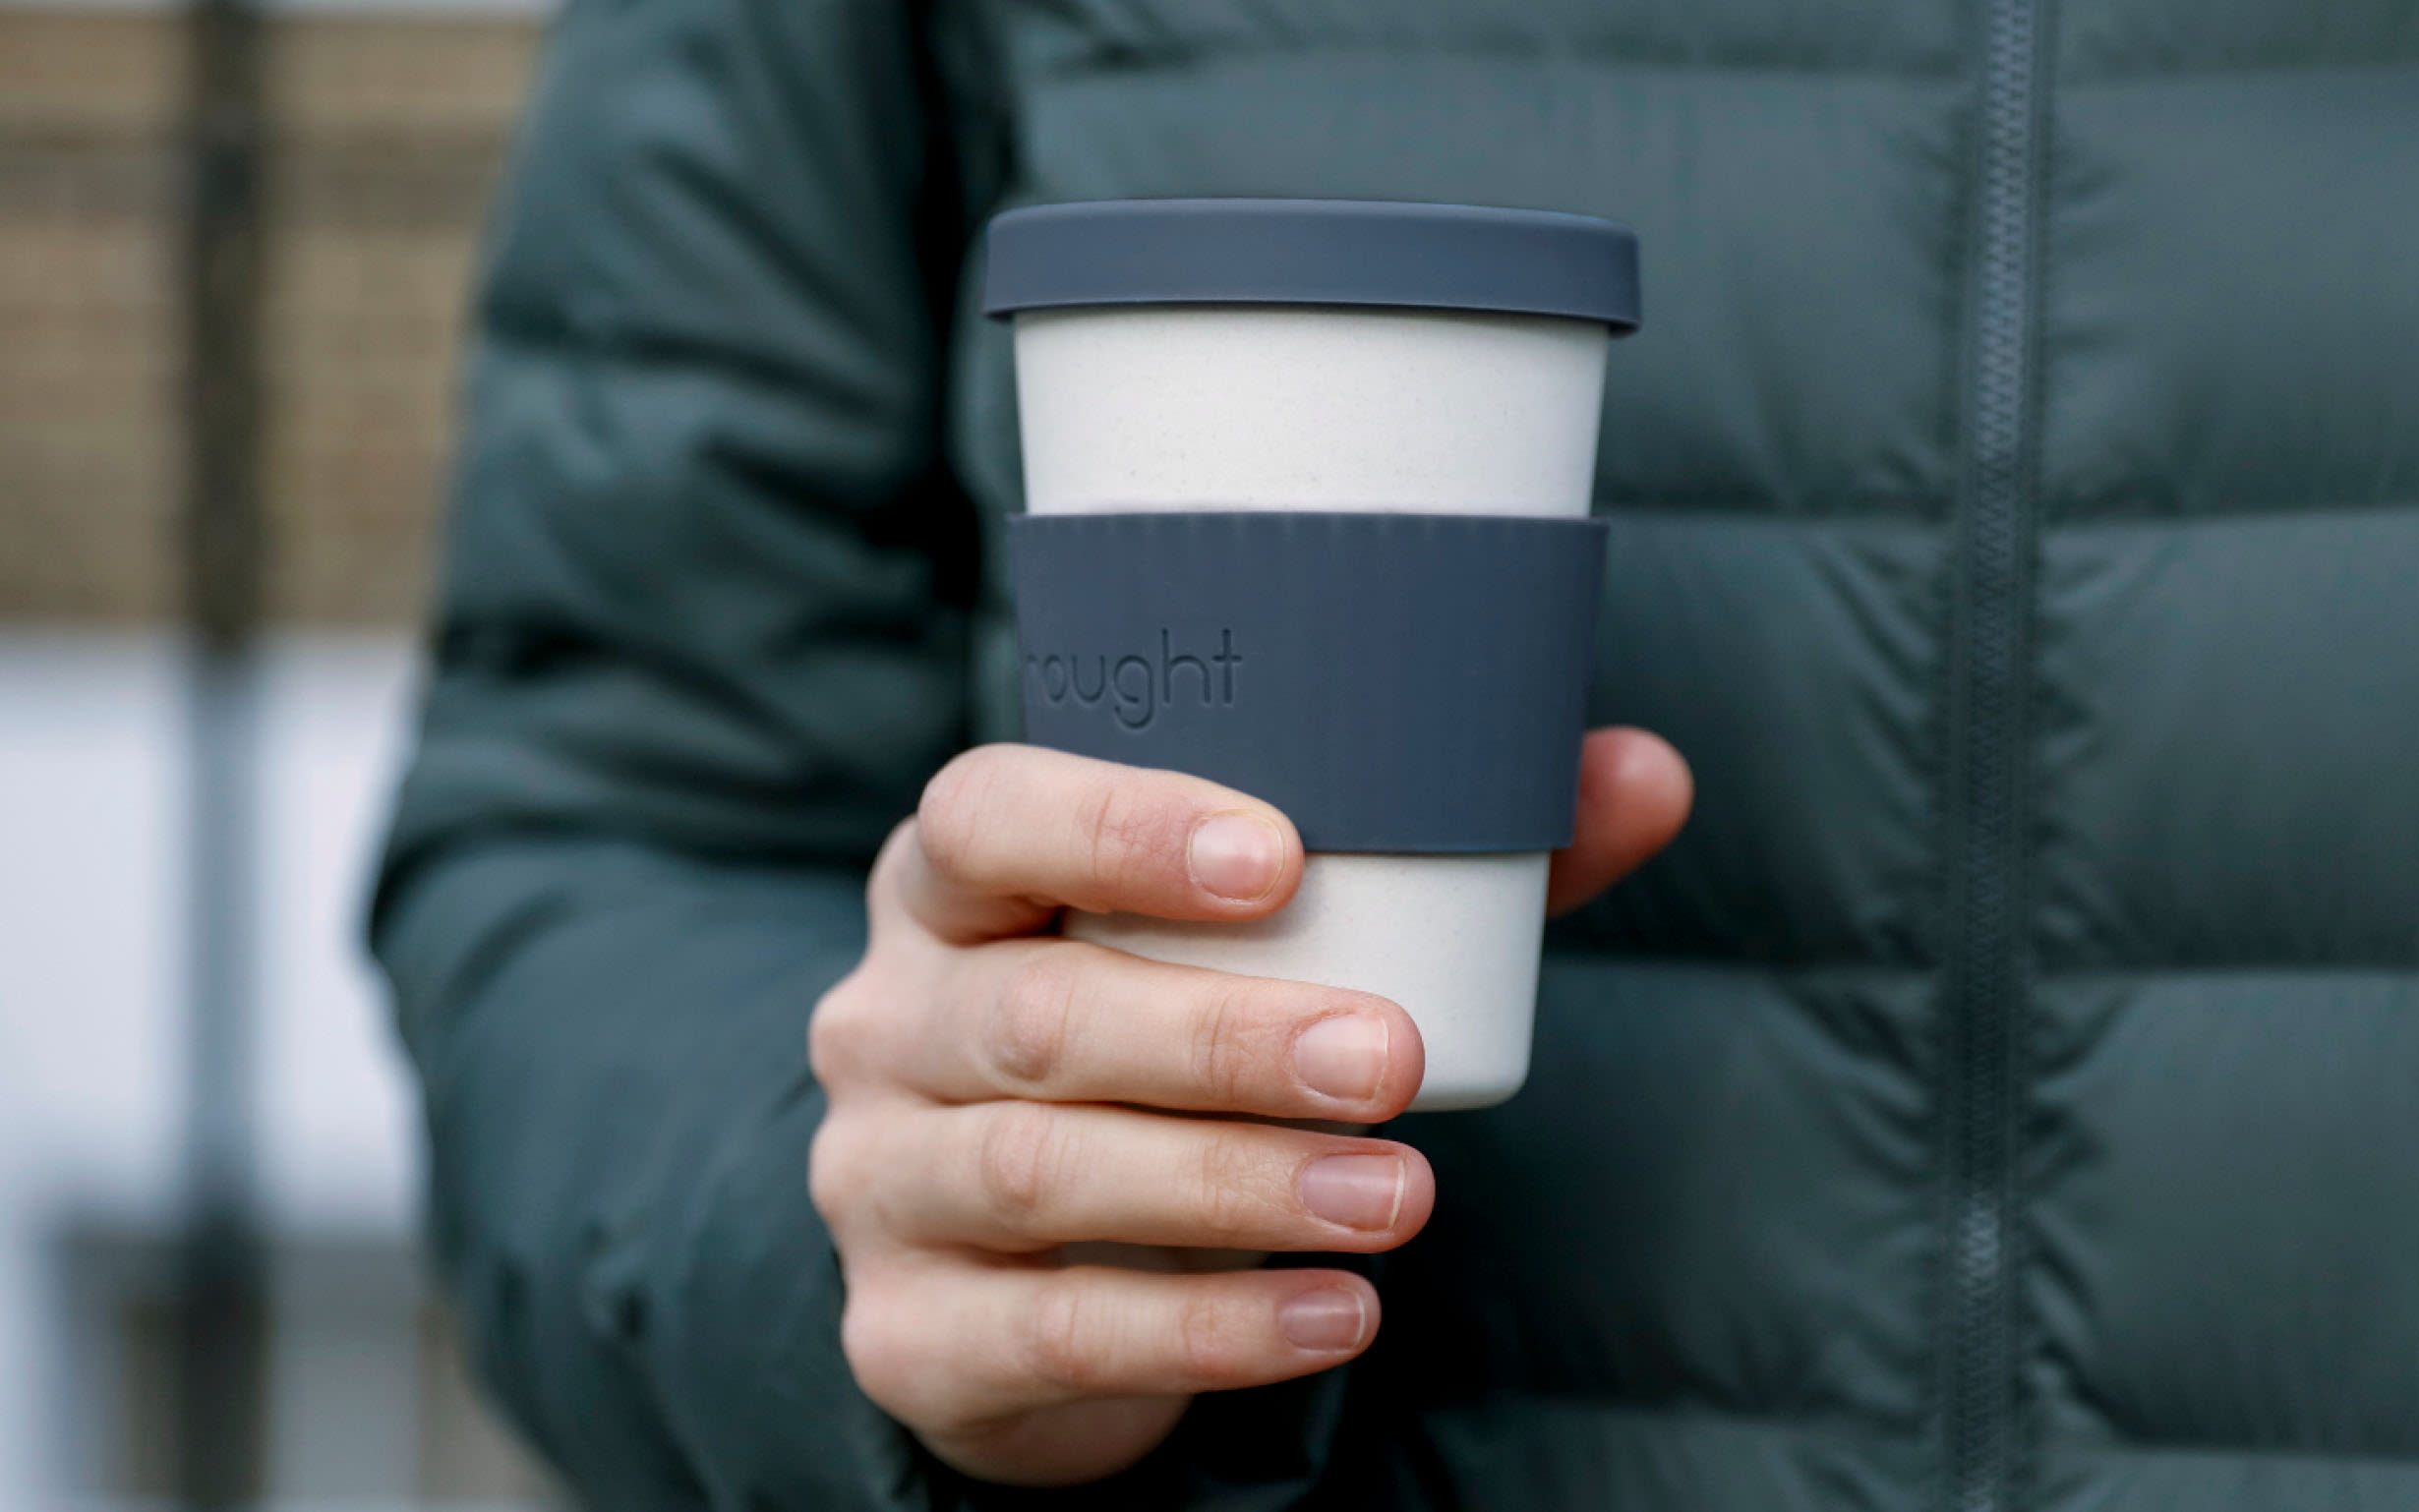 A person holding a reusable coffee cup with the Nought logo on it